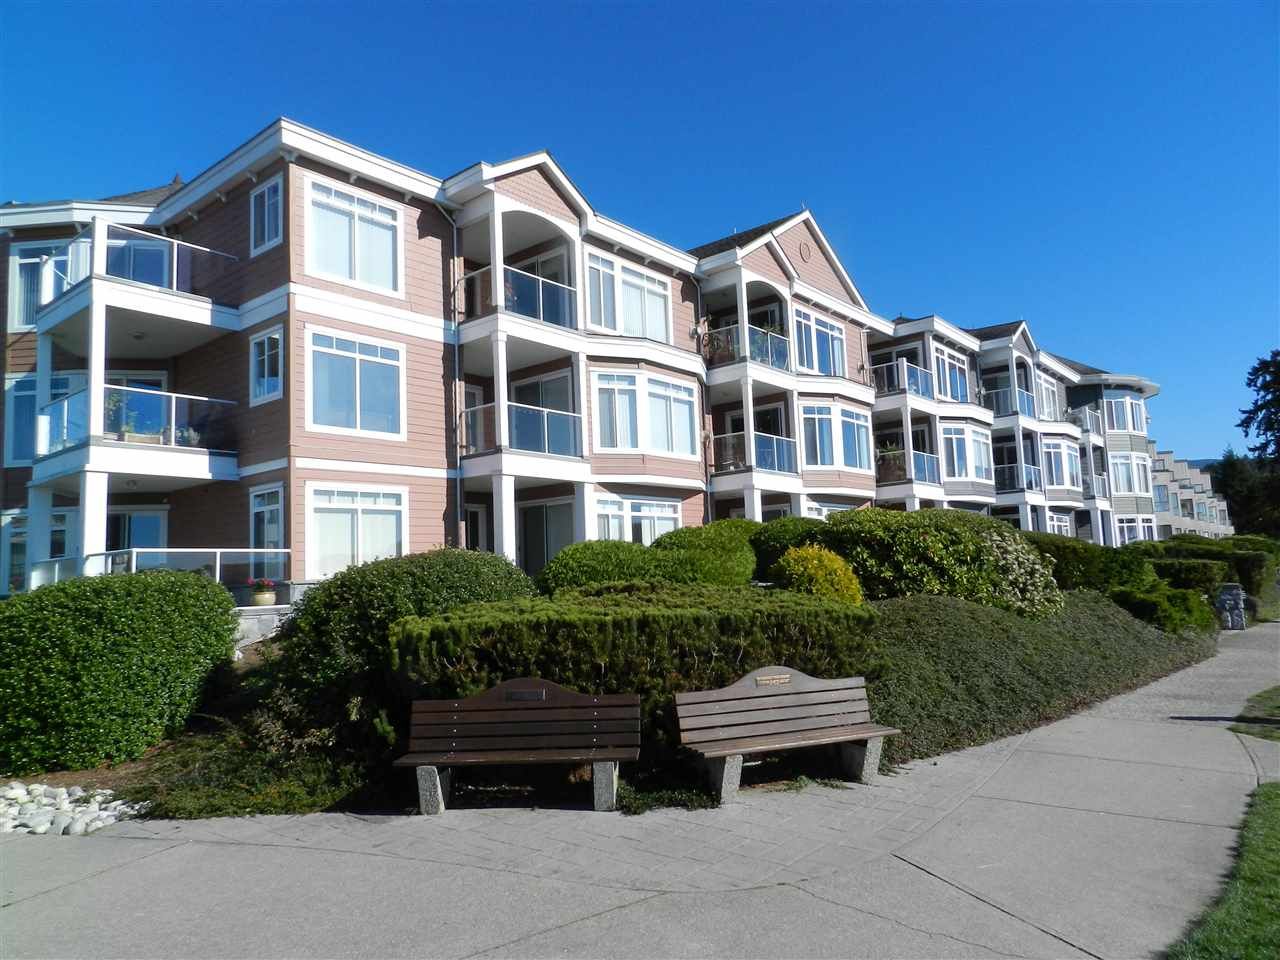 Main Photo: 206 5470 INLET AVENUE in Sechelt: Sechelt District Condo for sale (Sunshine Coast)  : MLS® # R2120136